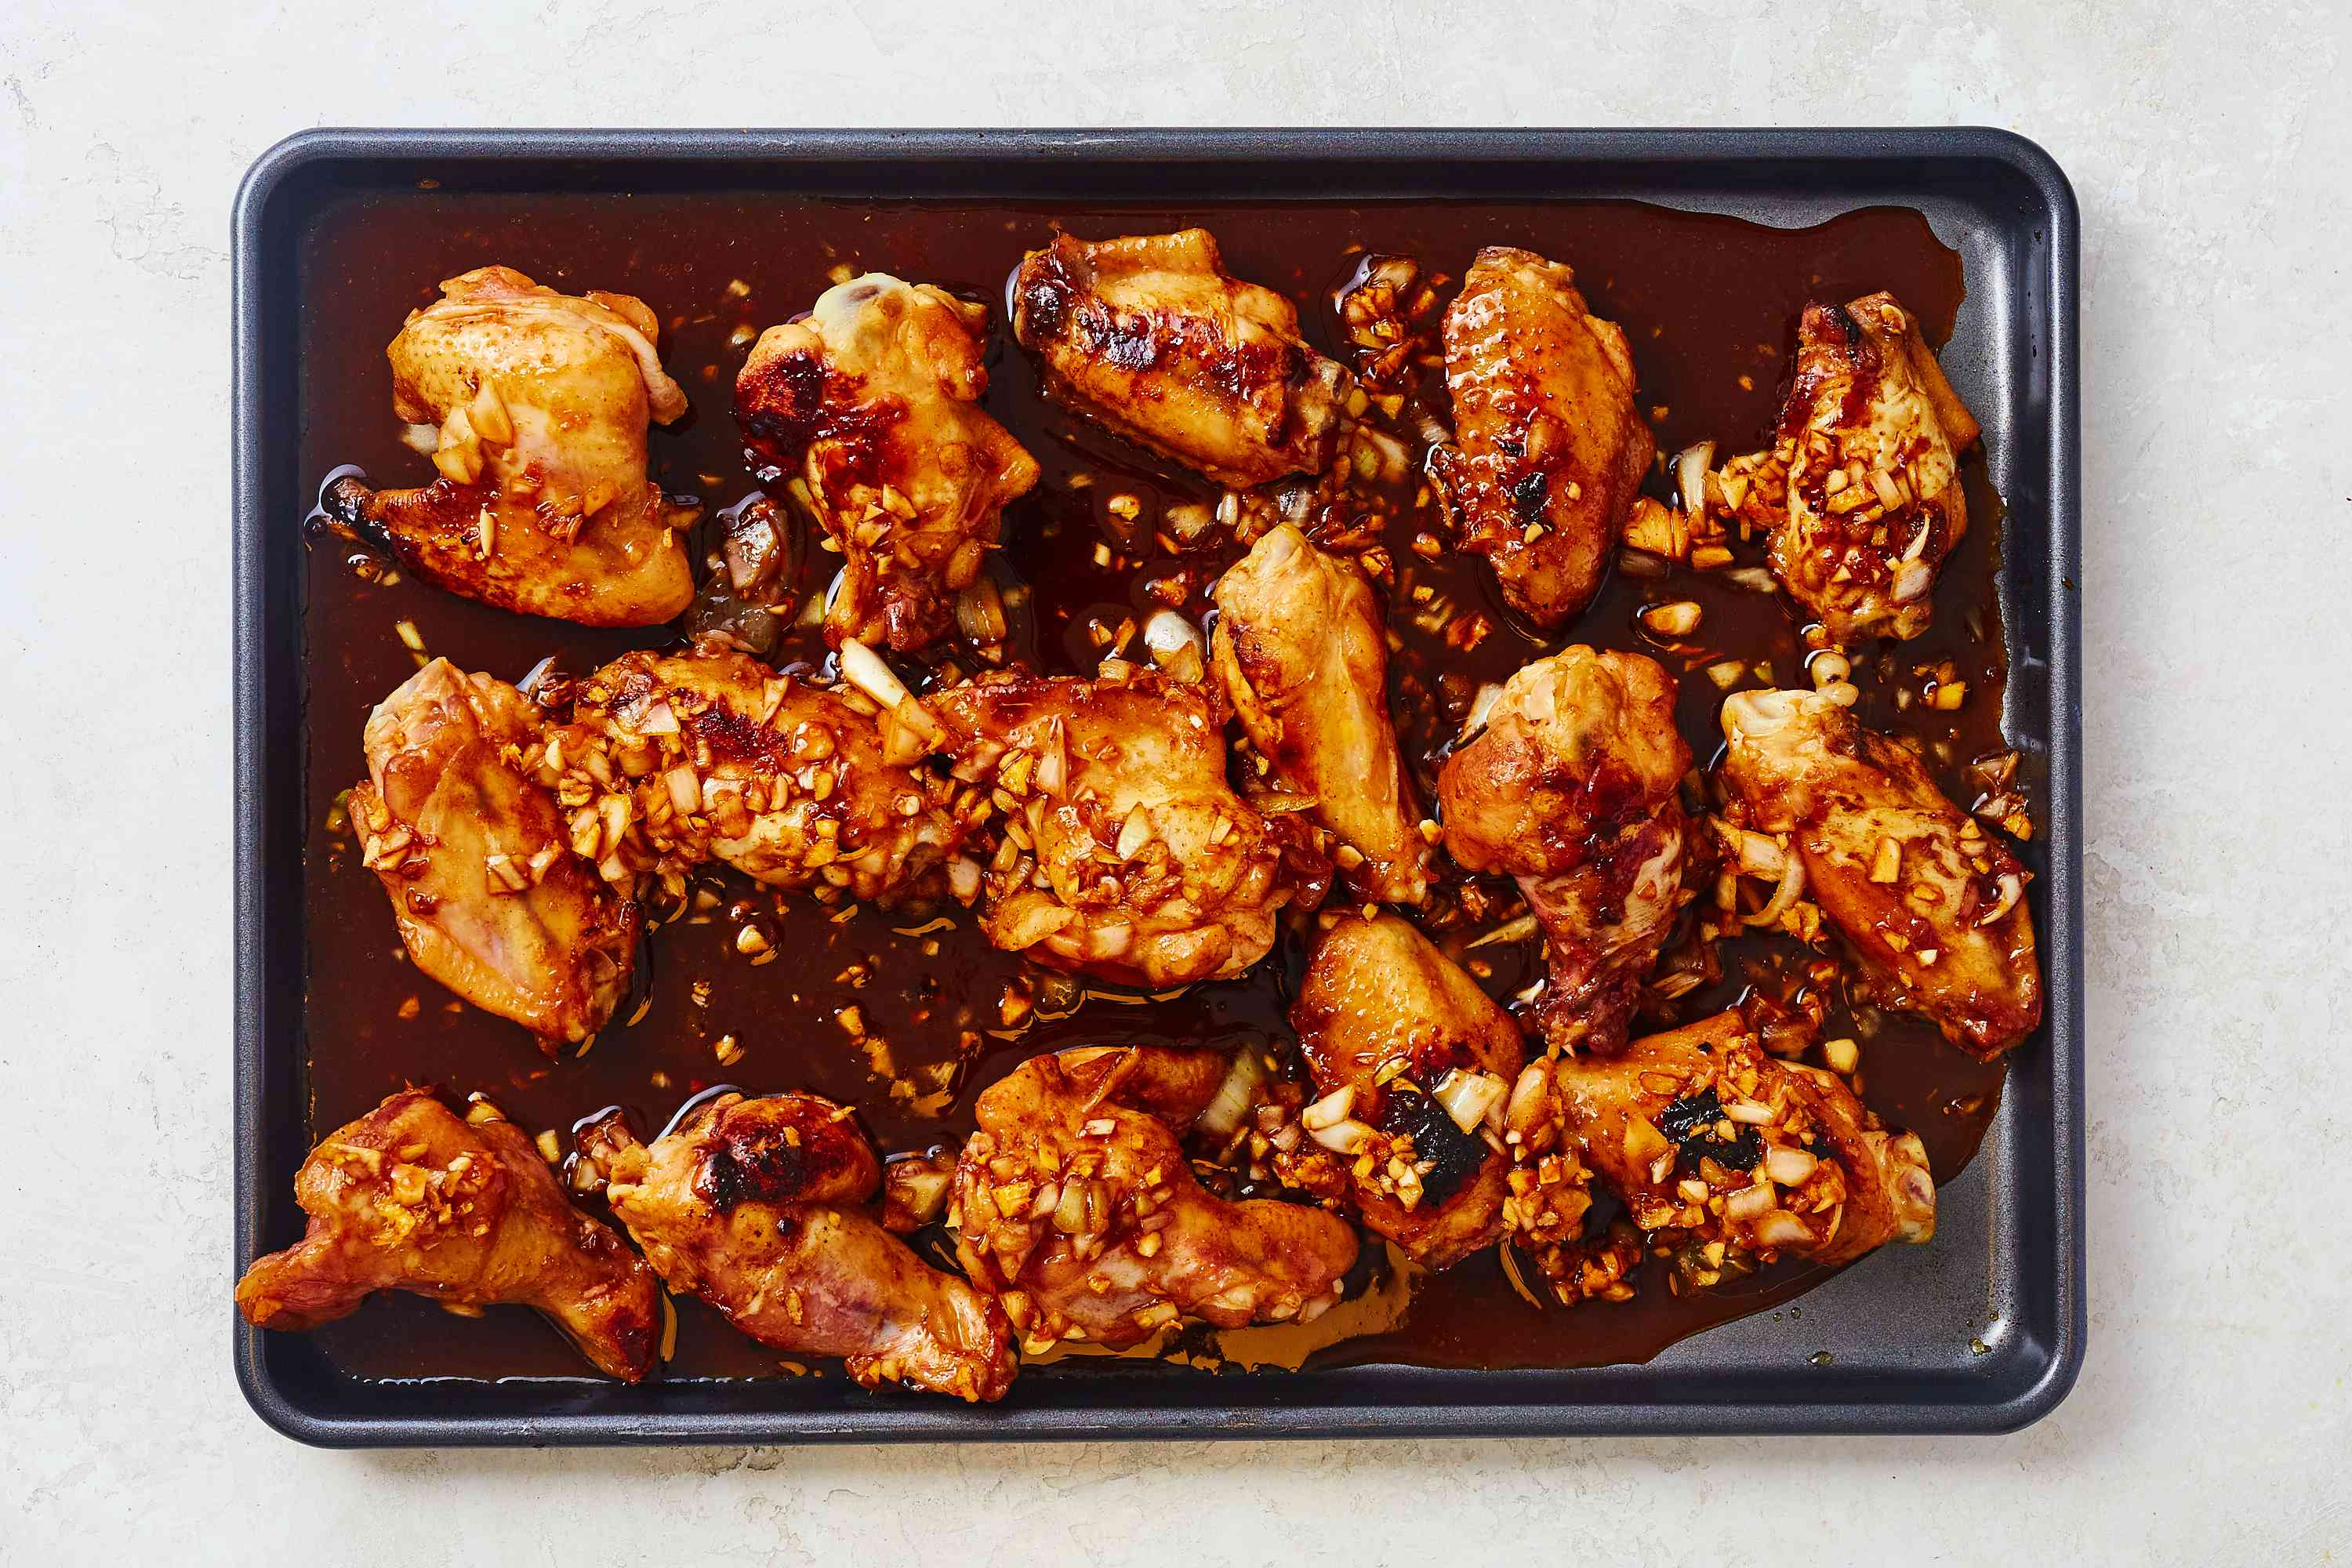 Transfer chicken wings to a baking pan